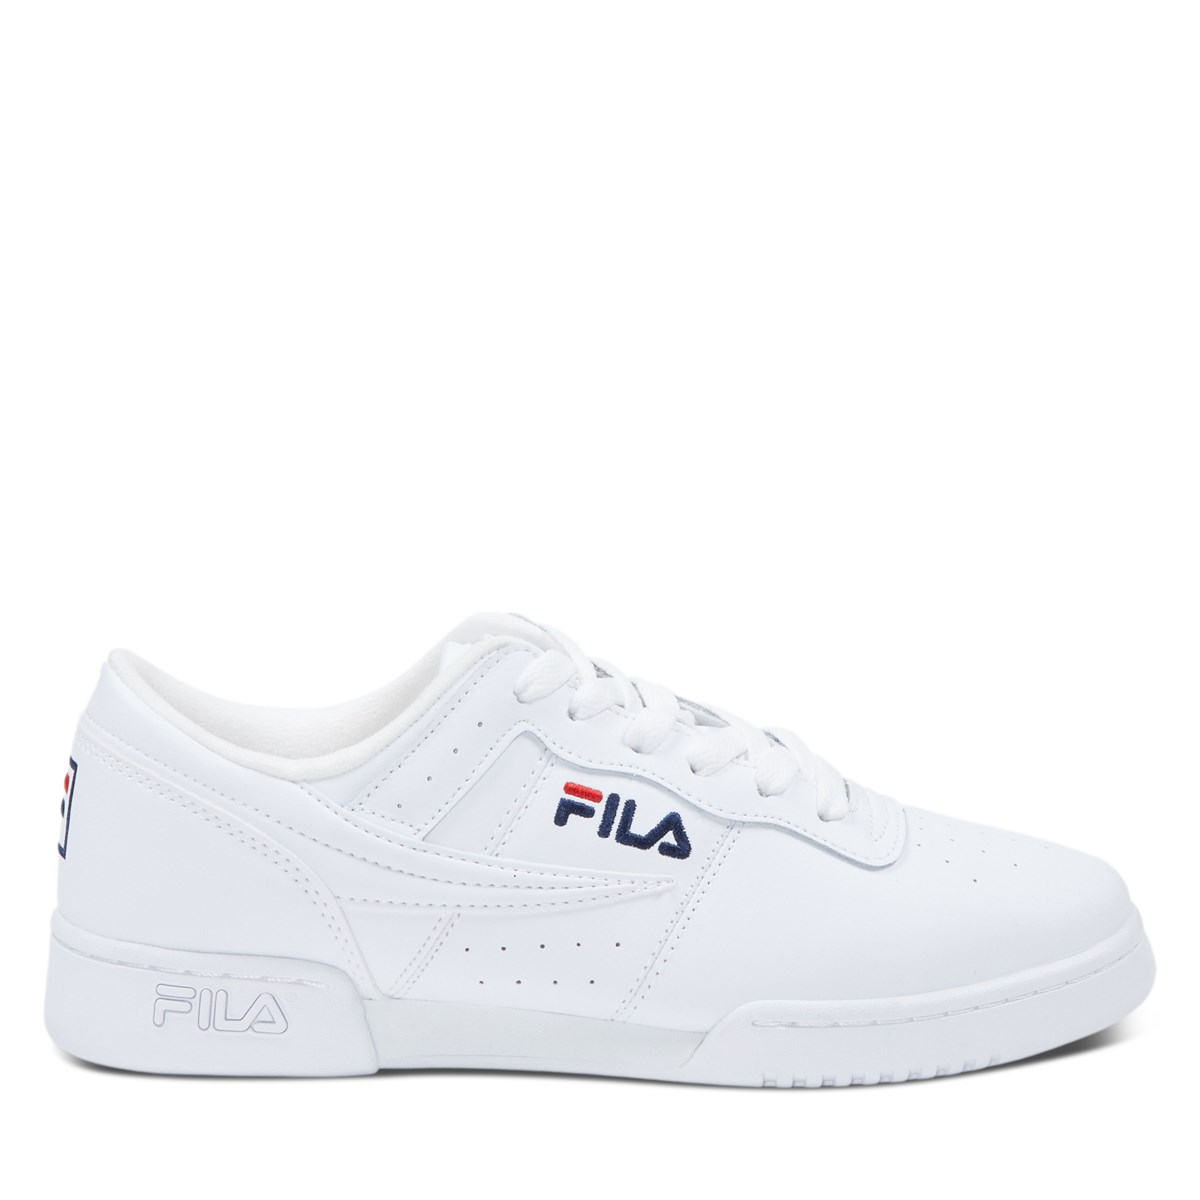 Men's Original Fitness Sneakers in White